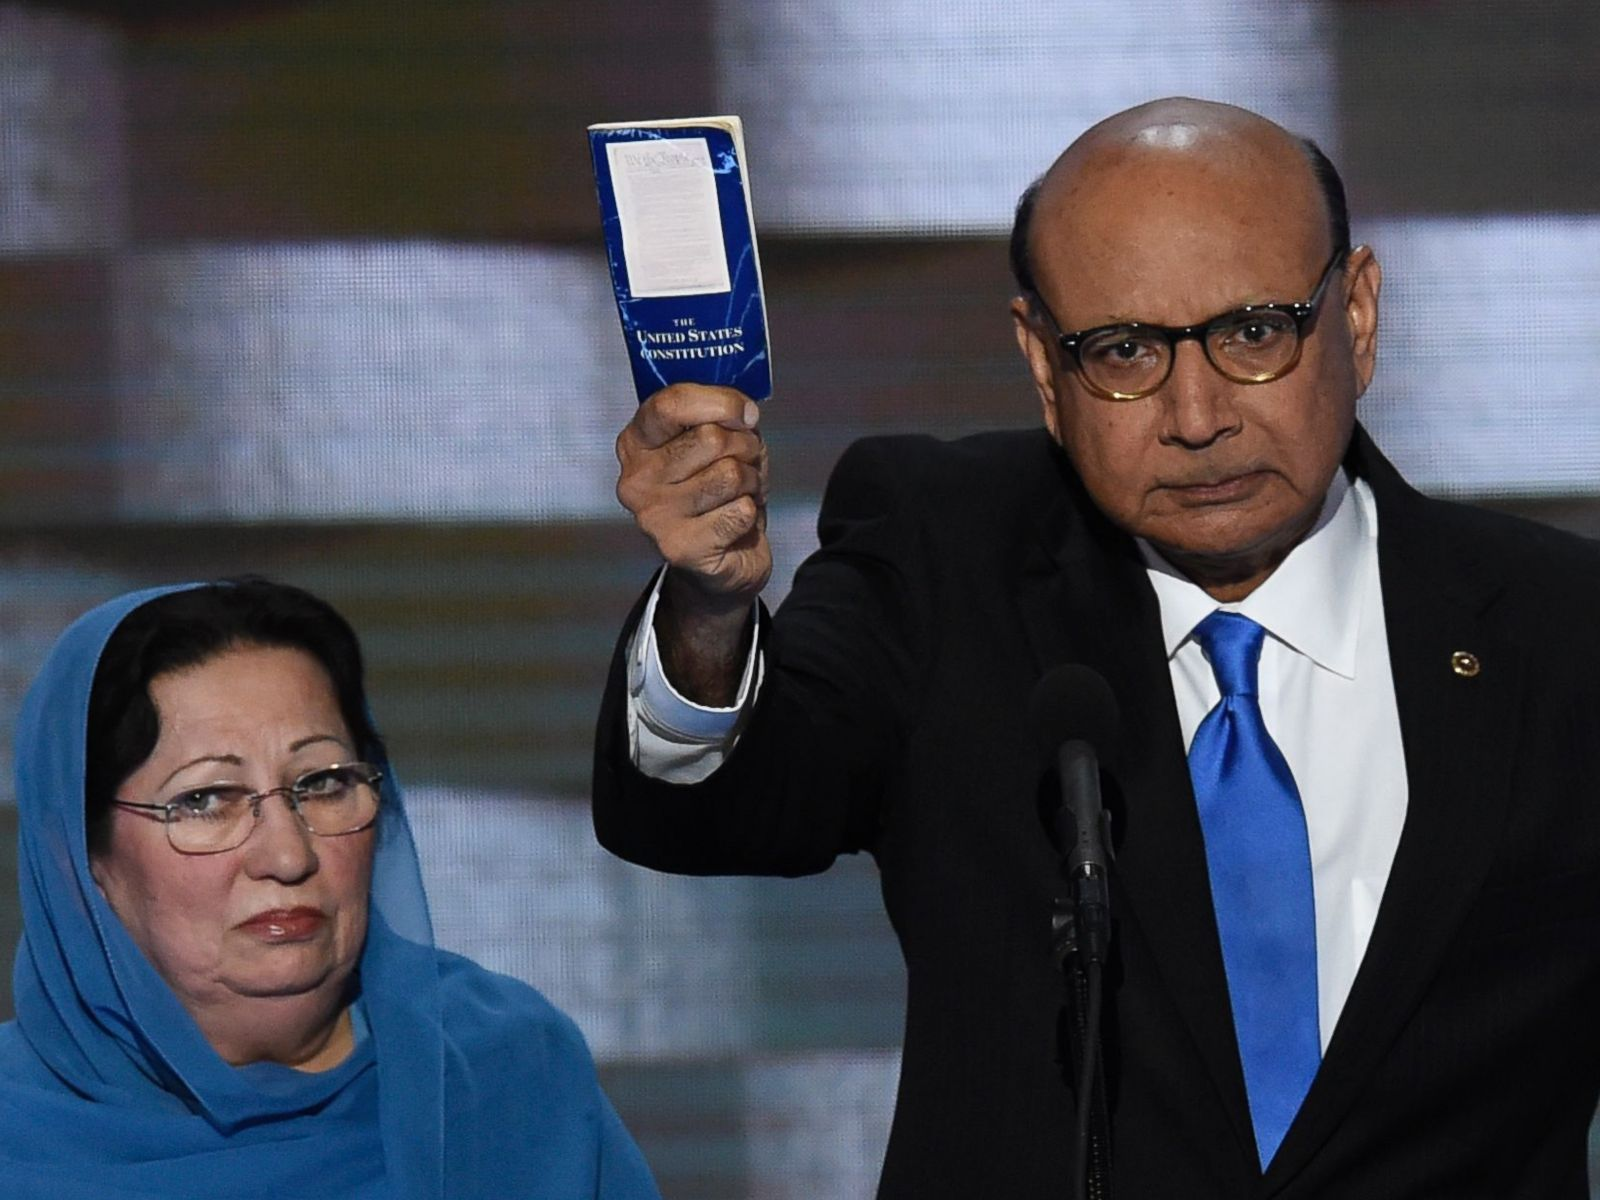 PHOTO: Khizr Khan holds his personal copy of the Constitution at the Democratic National Convention on July 28, 2016, in Philadelphia. Khizr Khan's son, Humayun S. M. Khan, was one of 14 American Muslims who died serving the United States.